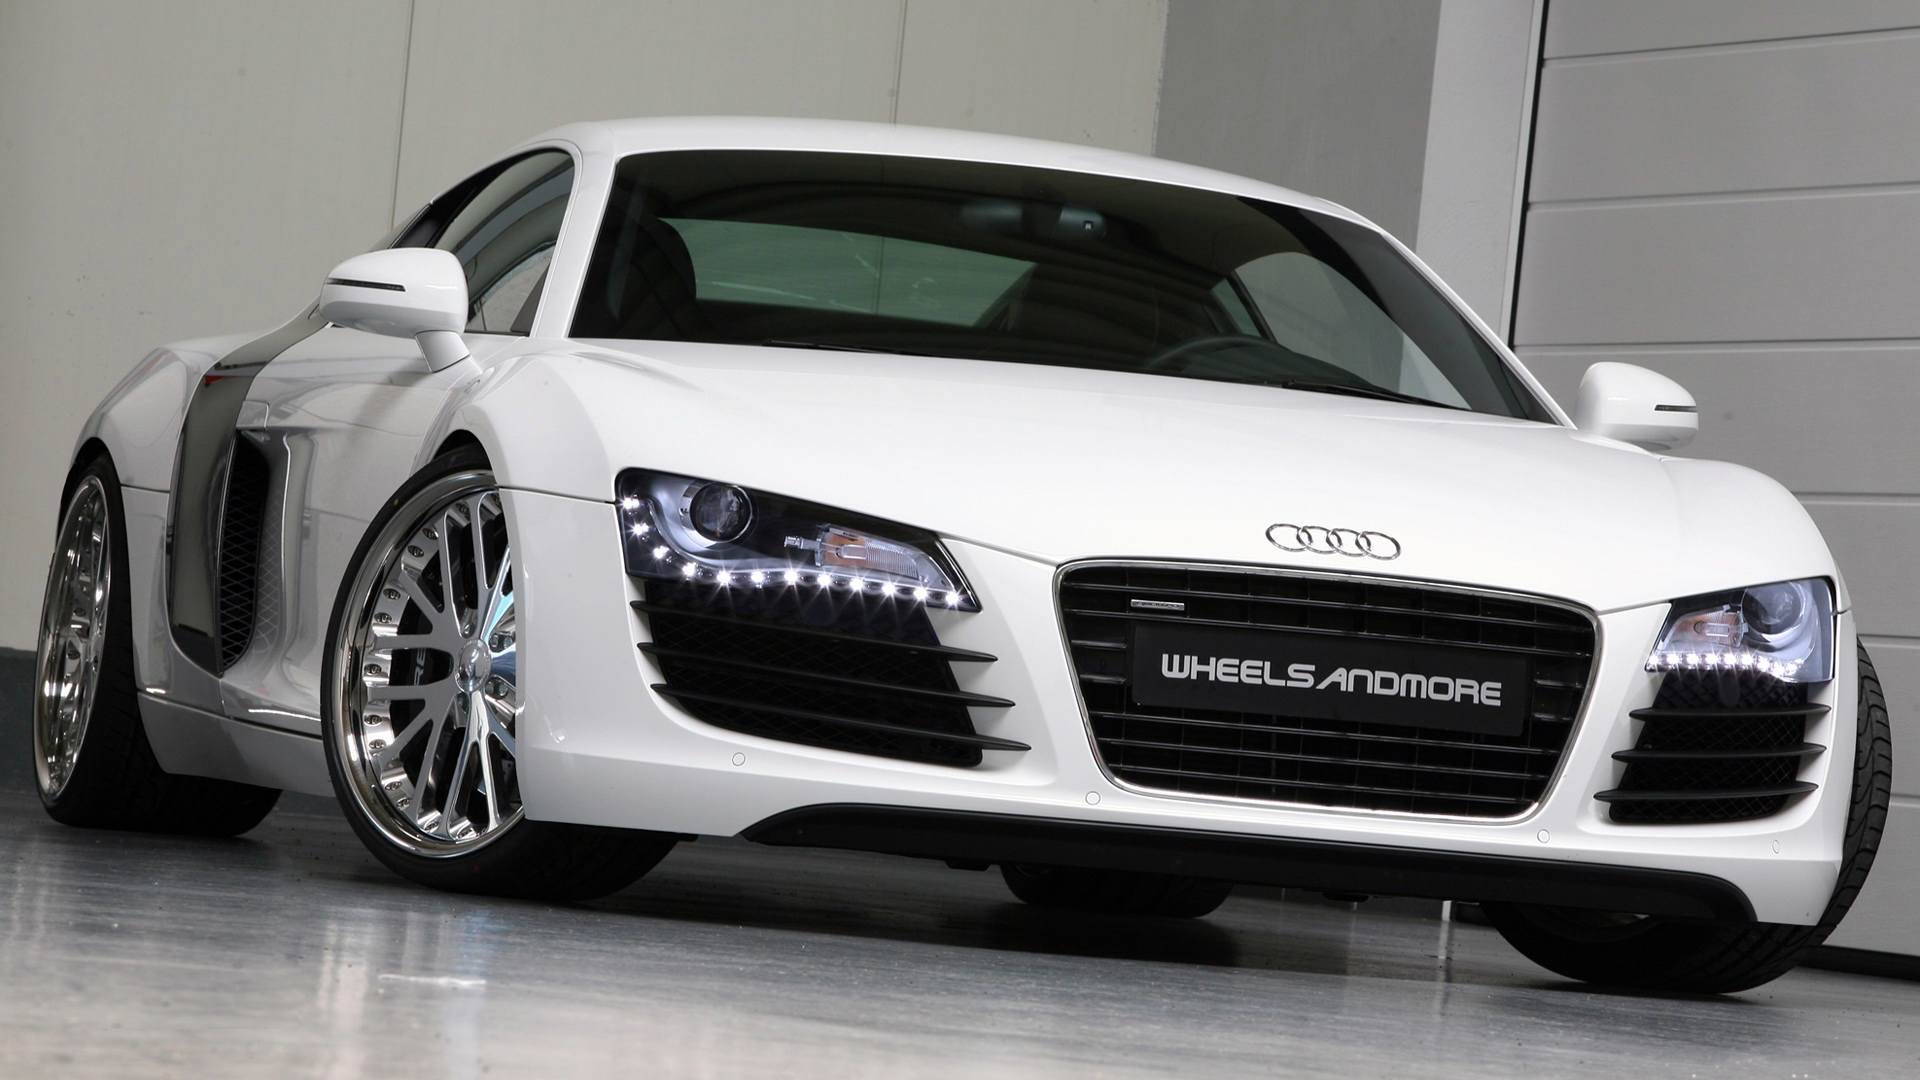 cars wallpaper page 6 dcervincom audi r8 hd wallpapers hd